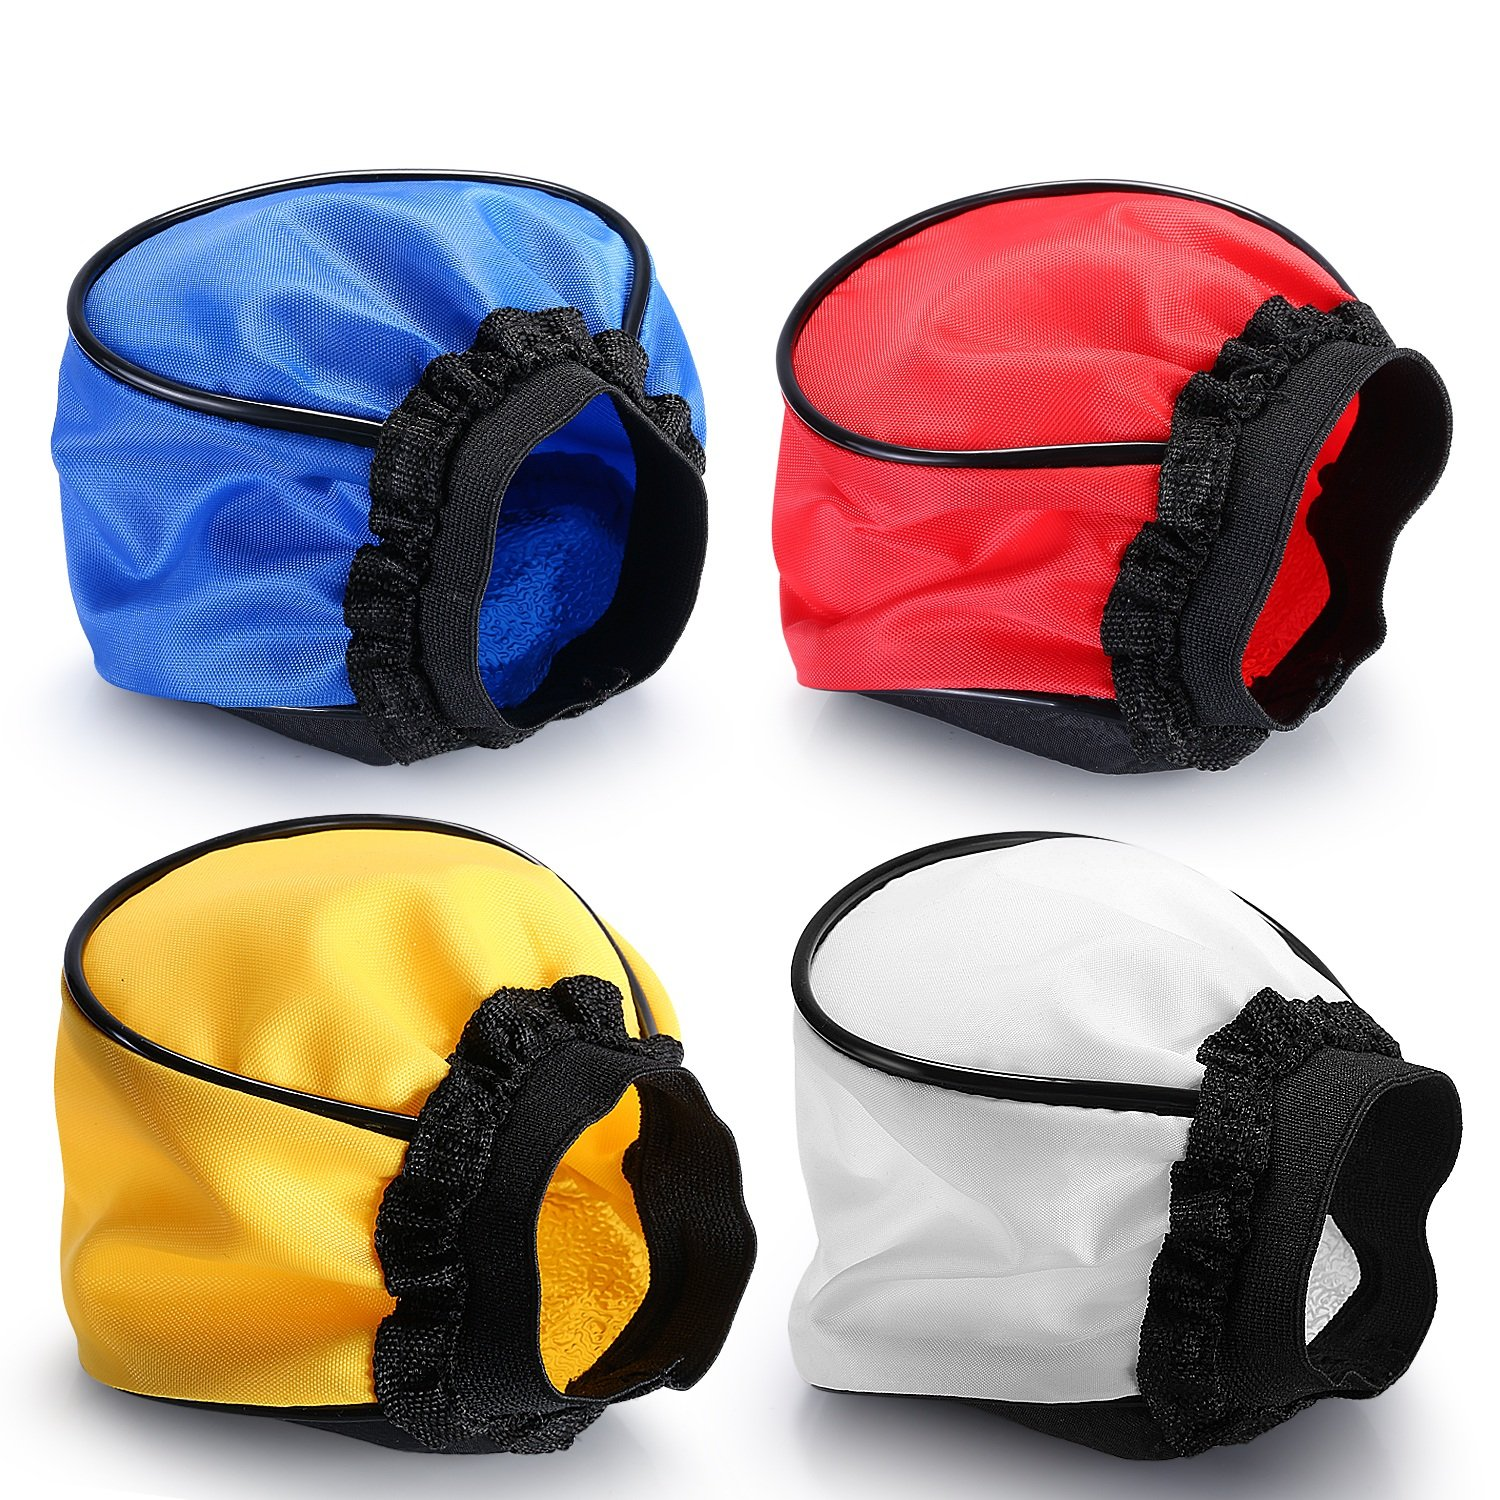 Neewer® Universal 4 Color Flash Diffuser Cloth 5 x 3.5 x 0.8in/12 x 9 x 2cm (Blue,Red,Yellow,White) for Cannon, Nikon, Neewer, Yunnuo, Altura, Other External Flash Units 10087203